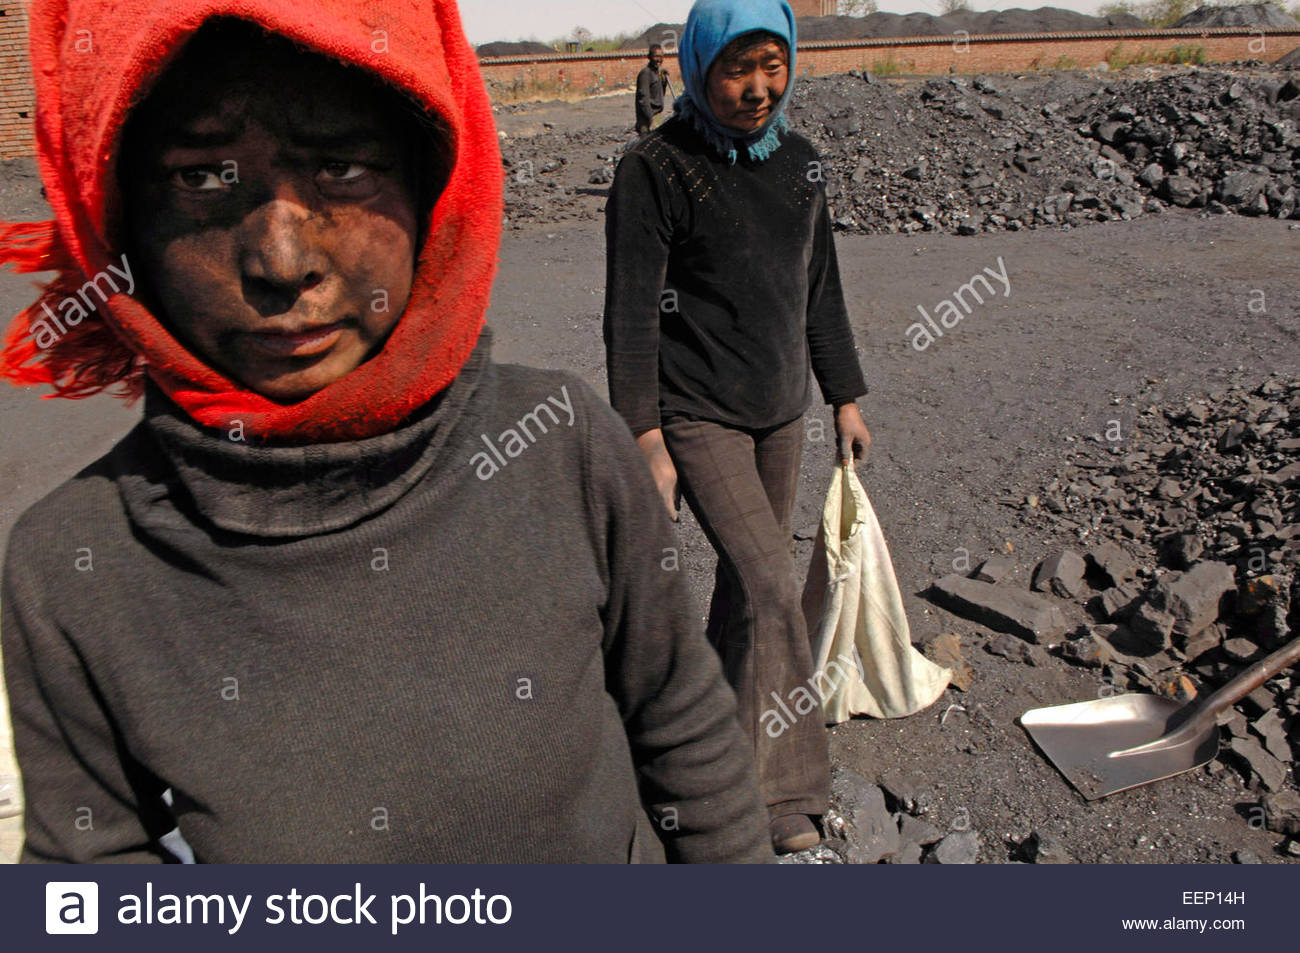 Workers sort and separate smoke, coal and anthracite (smoke-free coal) at a coal mine near Yinchuan (Ningxia province). Stock Photo